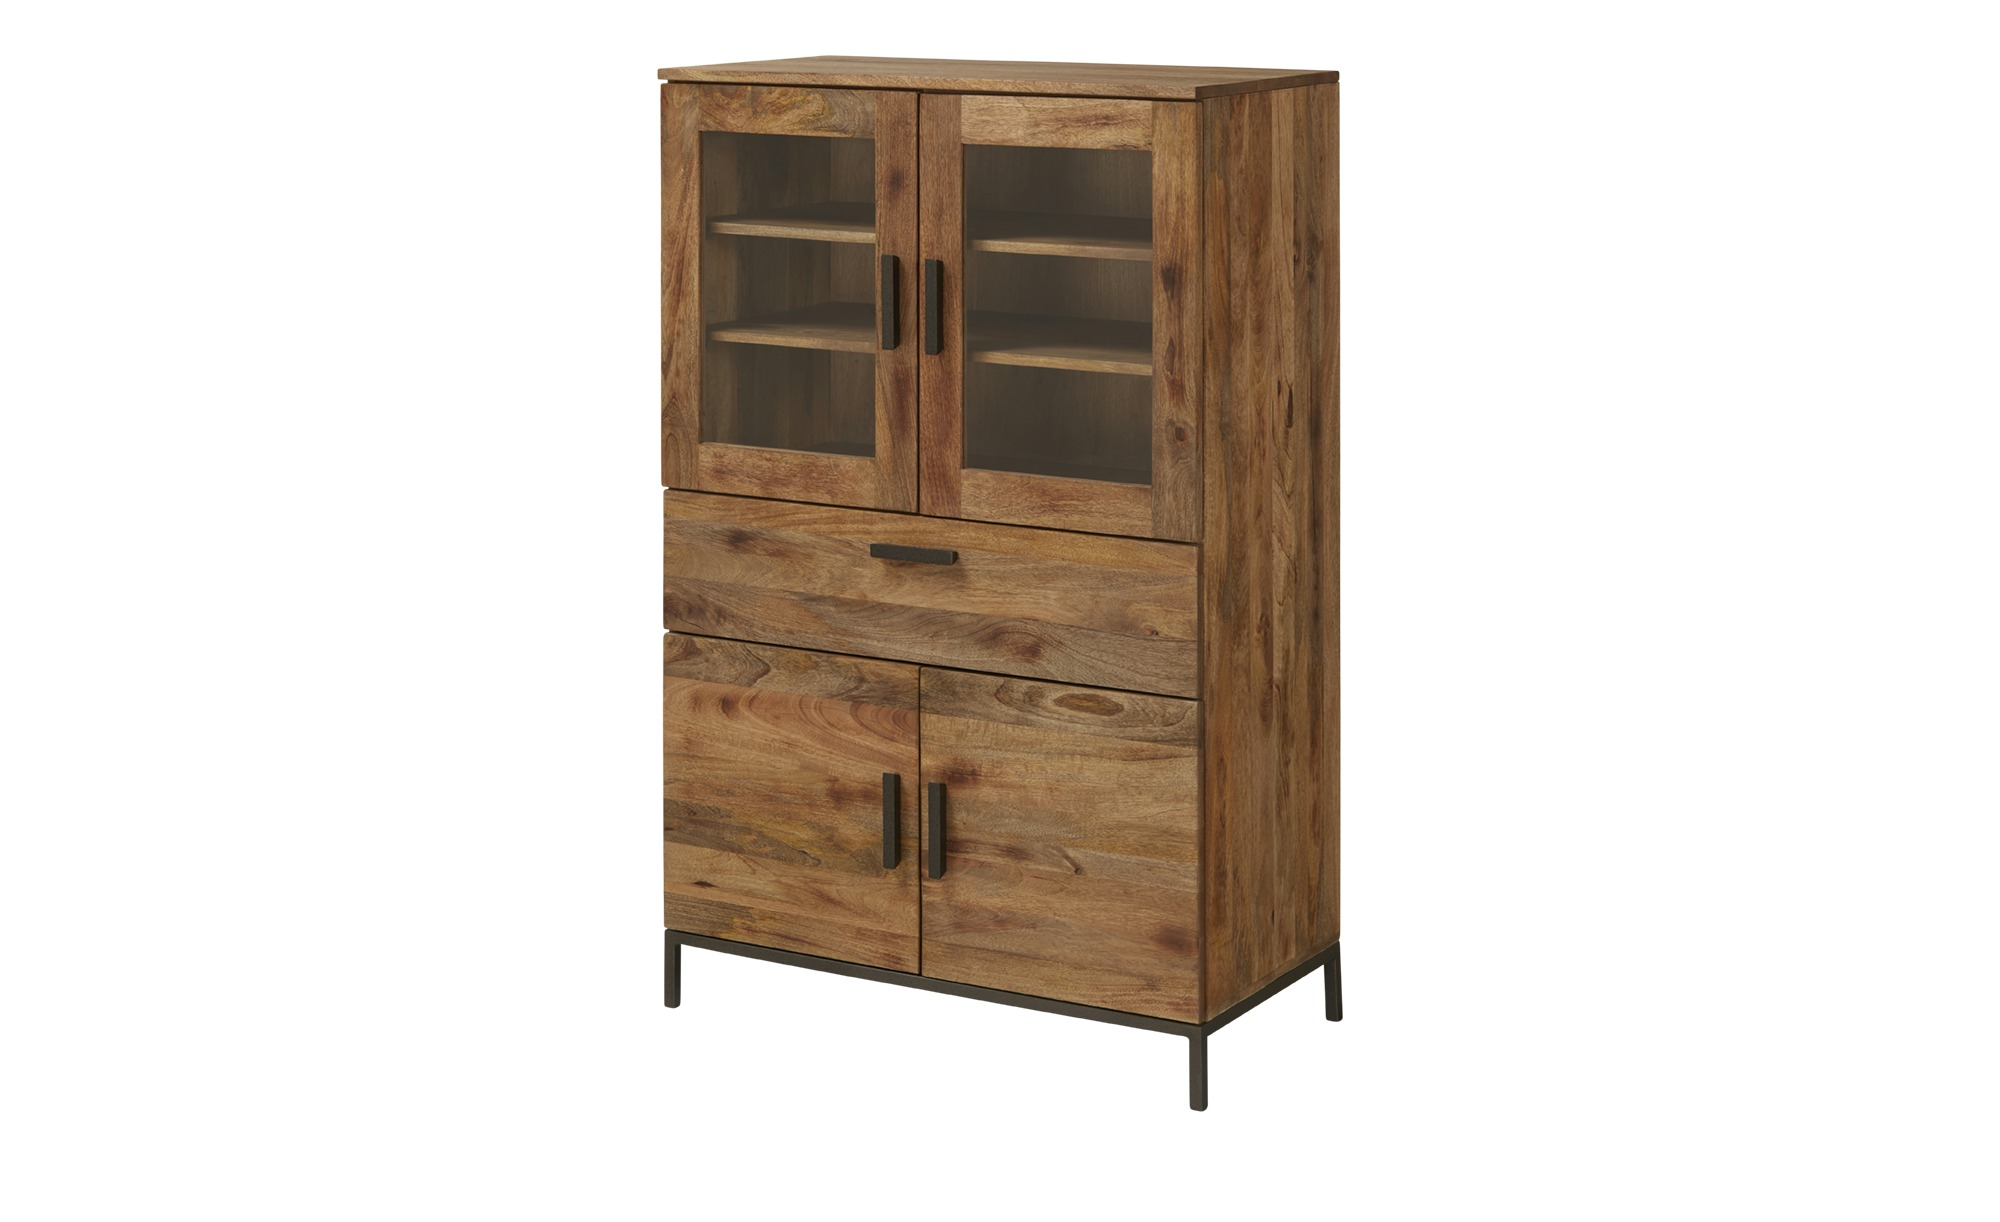 Highboard  Bologna ¦ holzfarben ¦ Maße (cm): B: 90 H: 140 T: 45 Kommoden & Sideboards > Highboards - Höffner